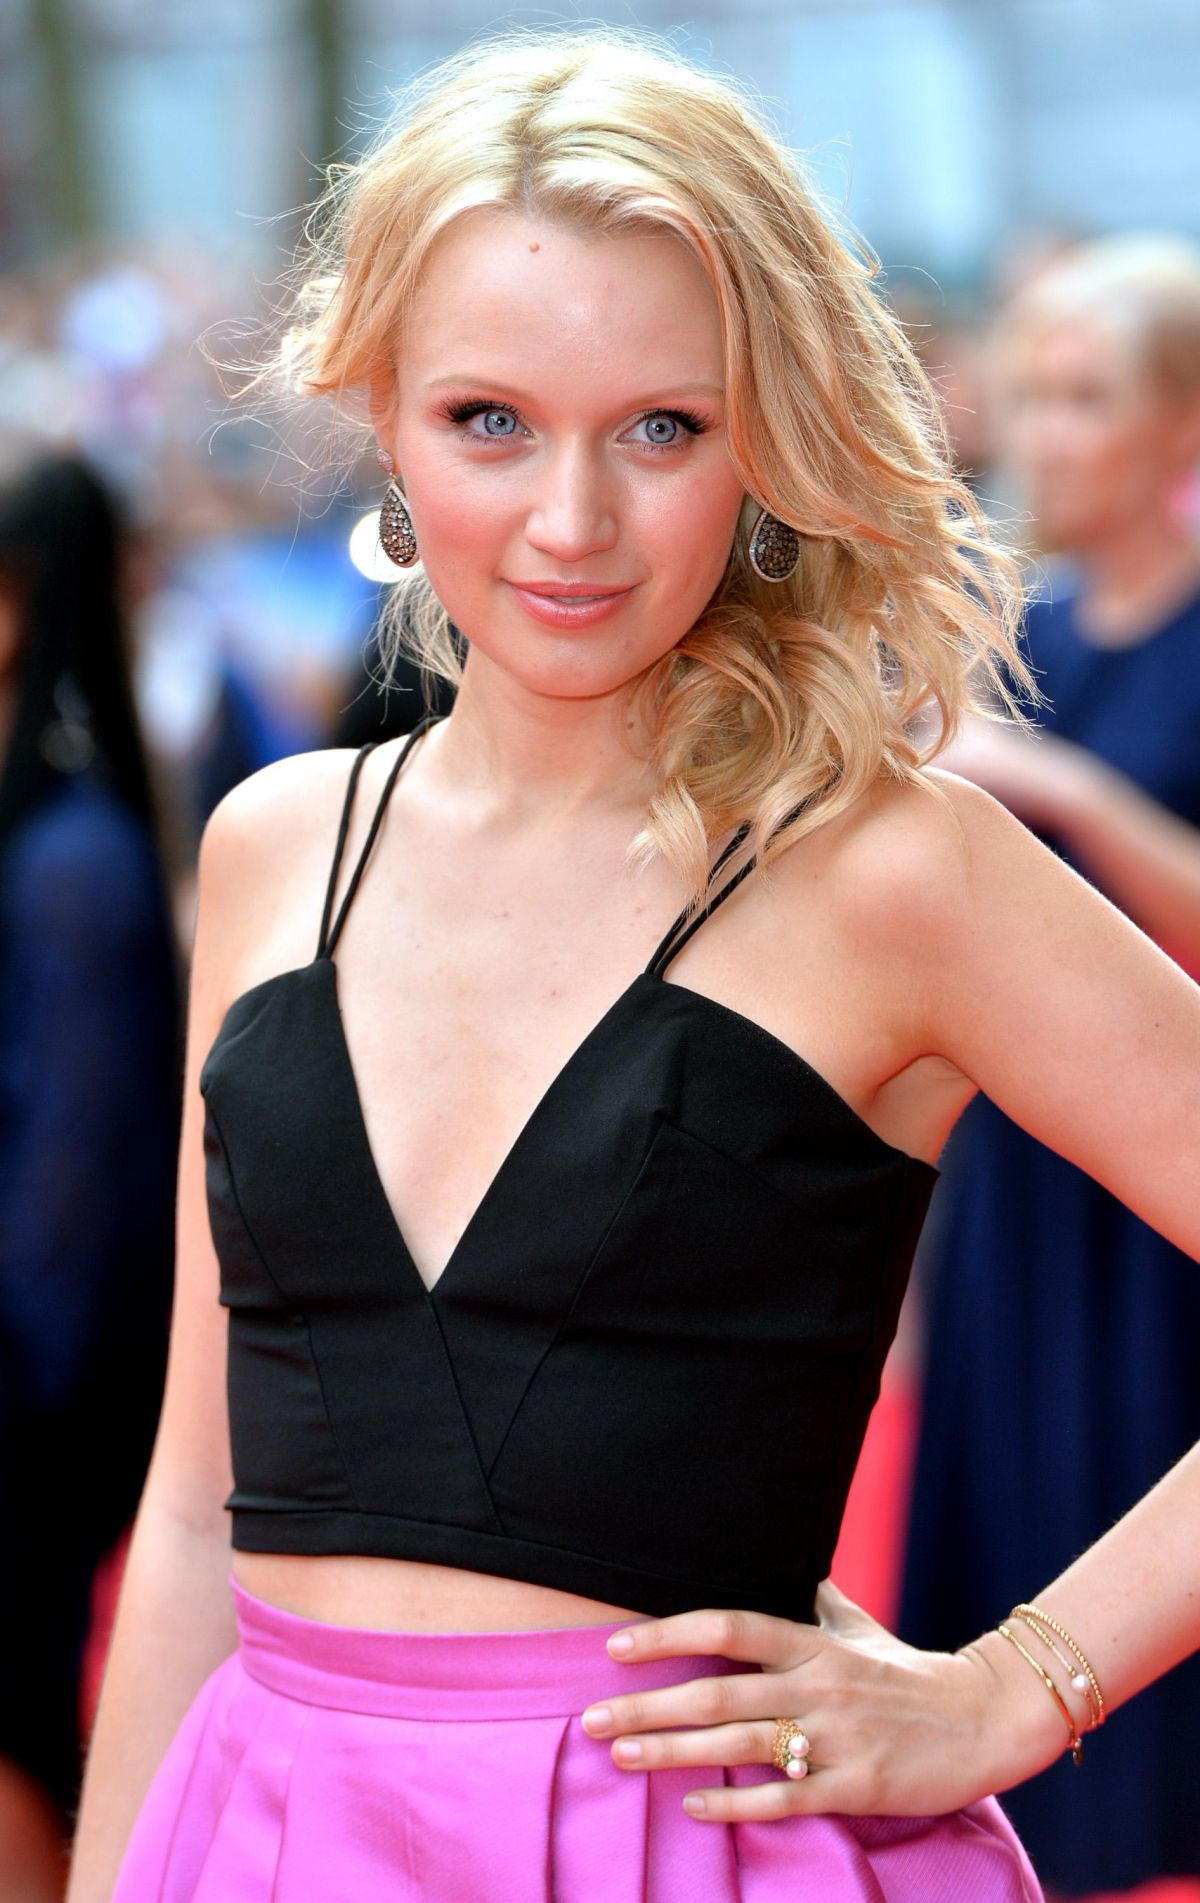 ICloud Emily Berrington naked (13 foto and video), Topless, Cleavage, Feet, braless 2015